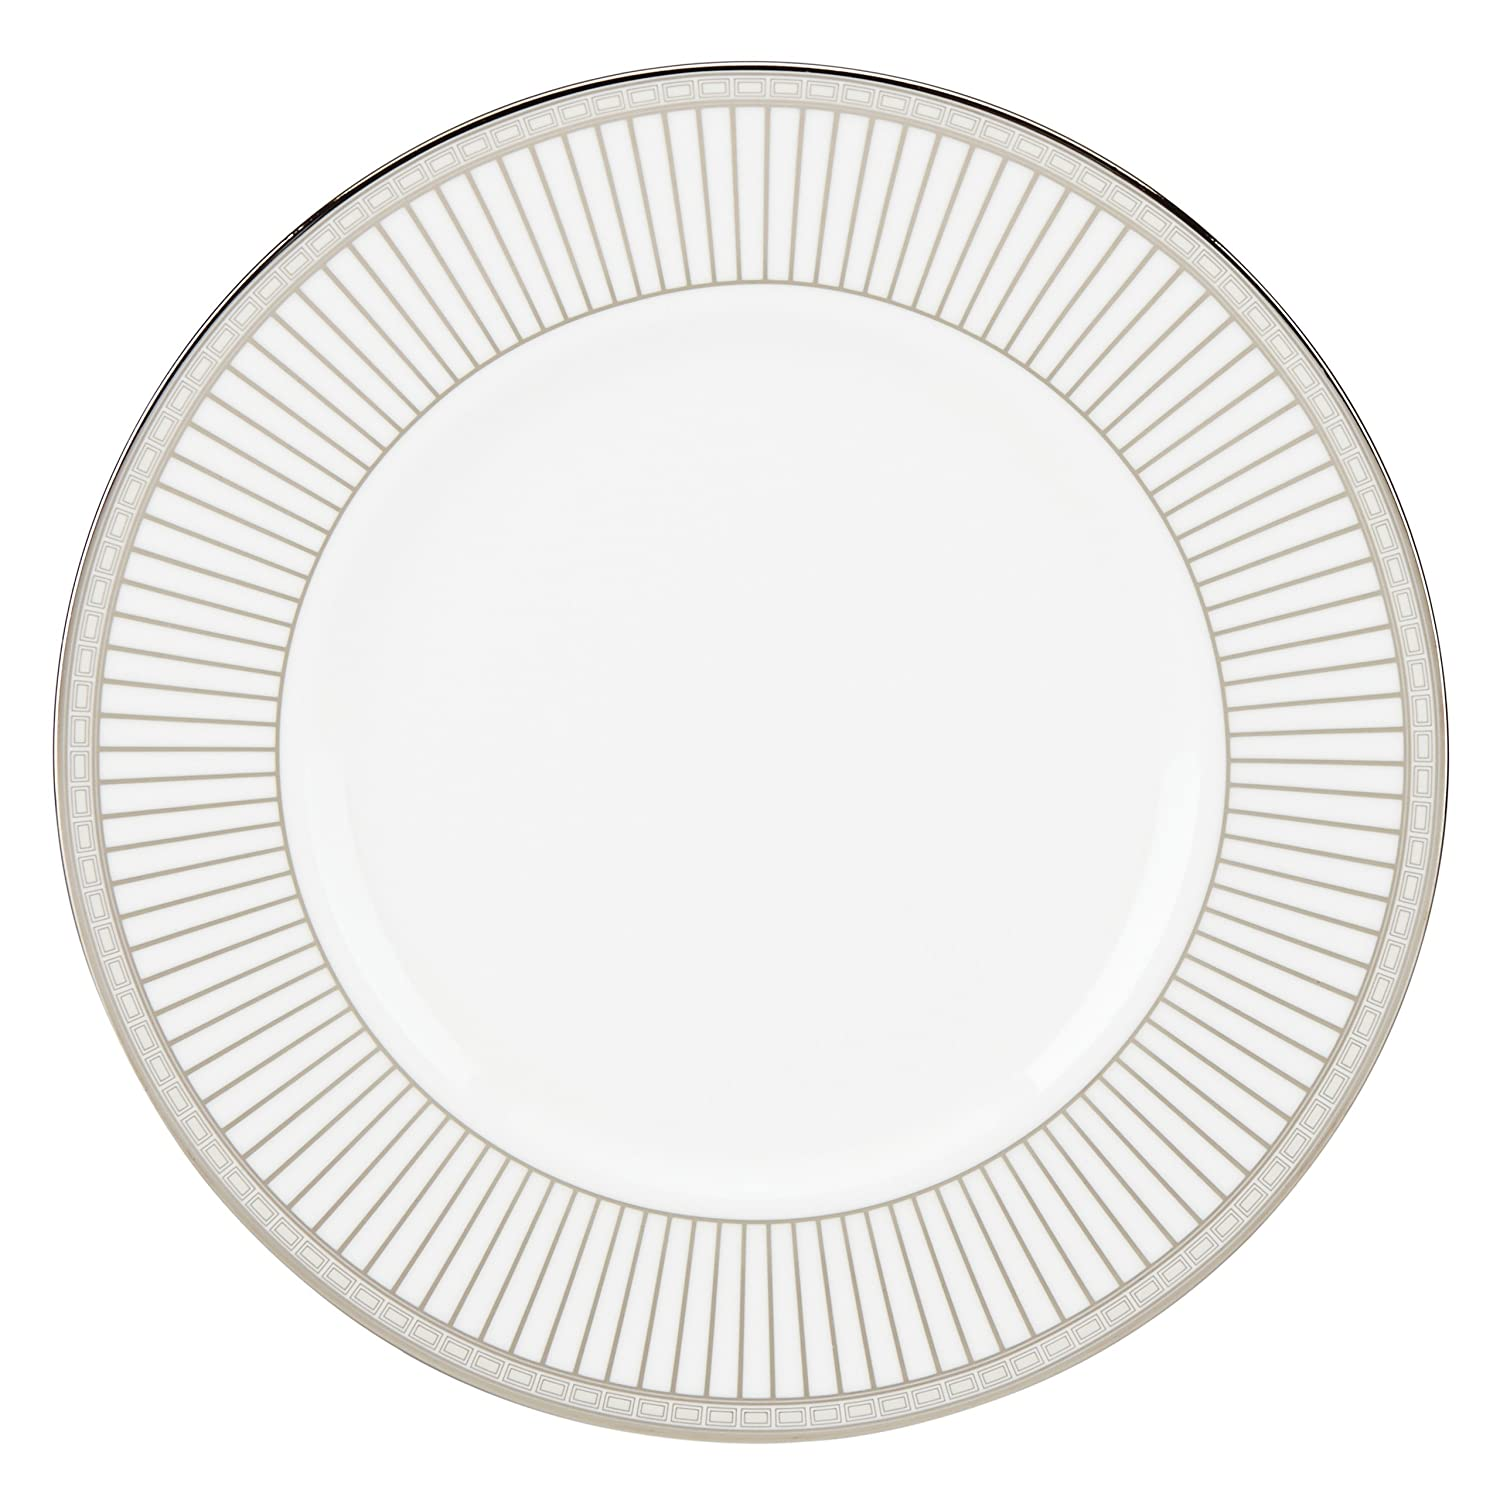 Lenox Murray Hill Platinum-Banded Bone China 5-Piece Place Setting, Service for 1 6229942